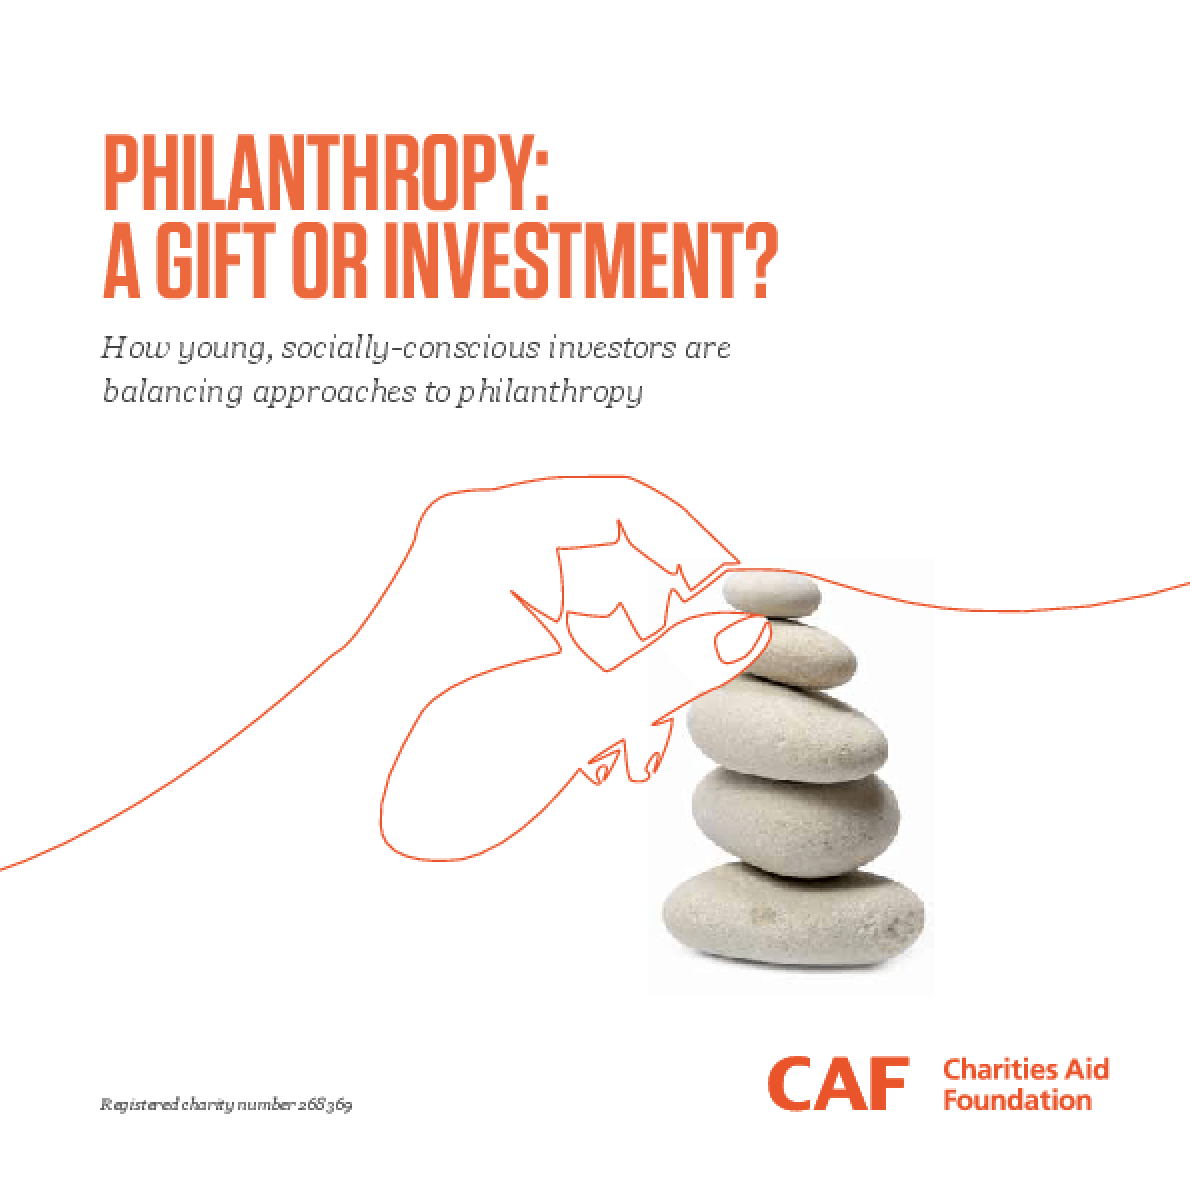 Philanthropy: A Gift or Investment?